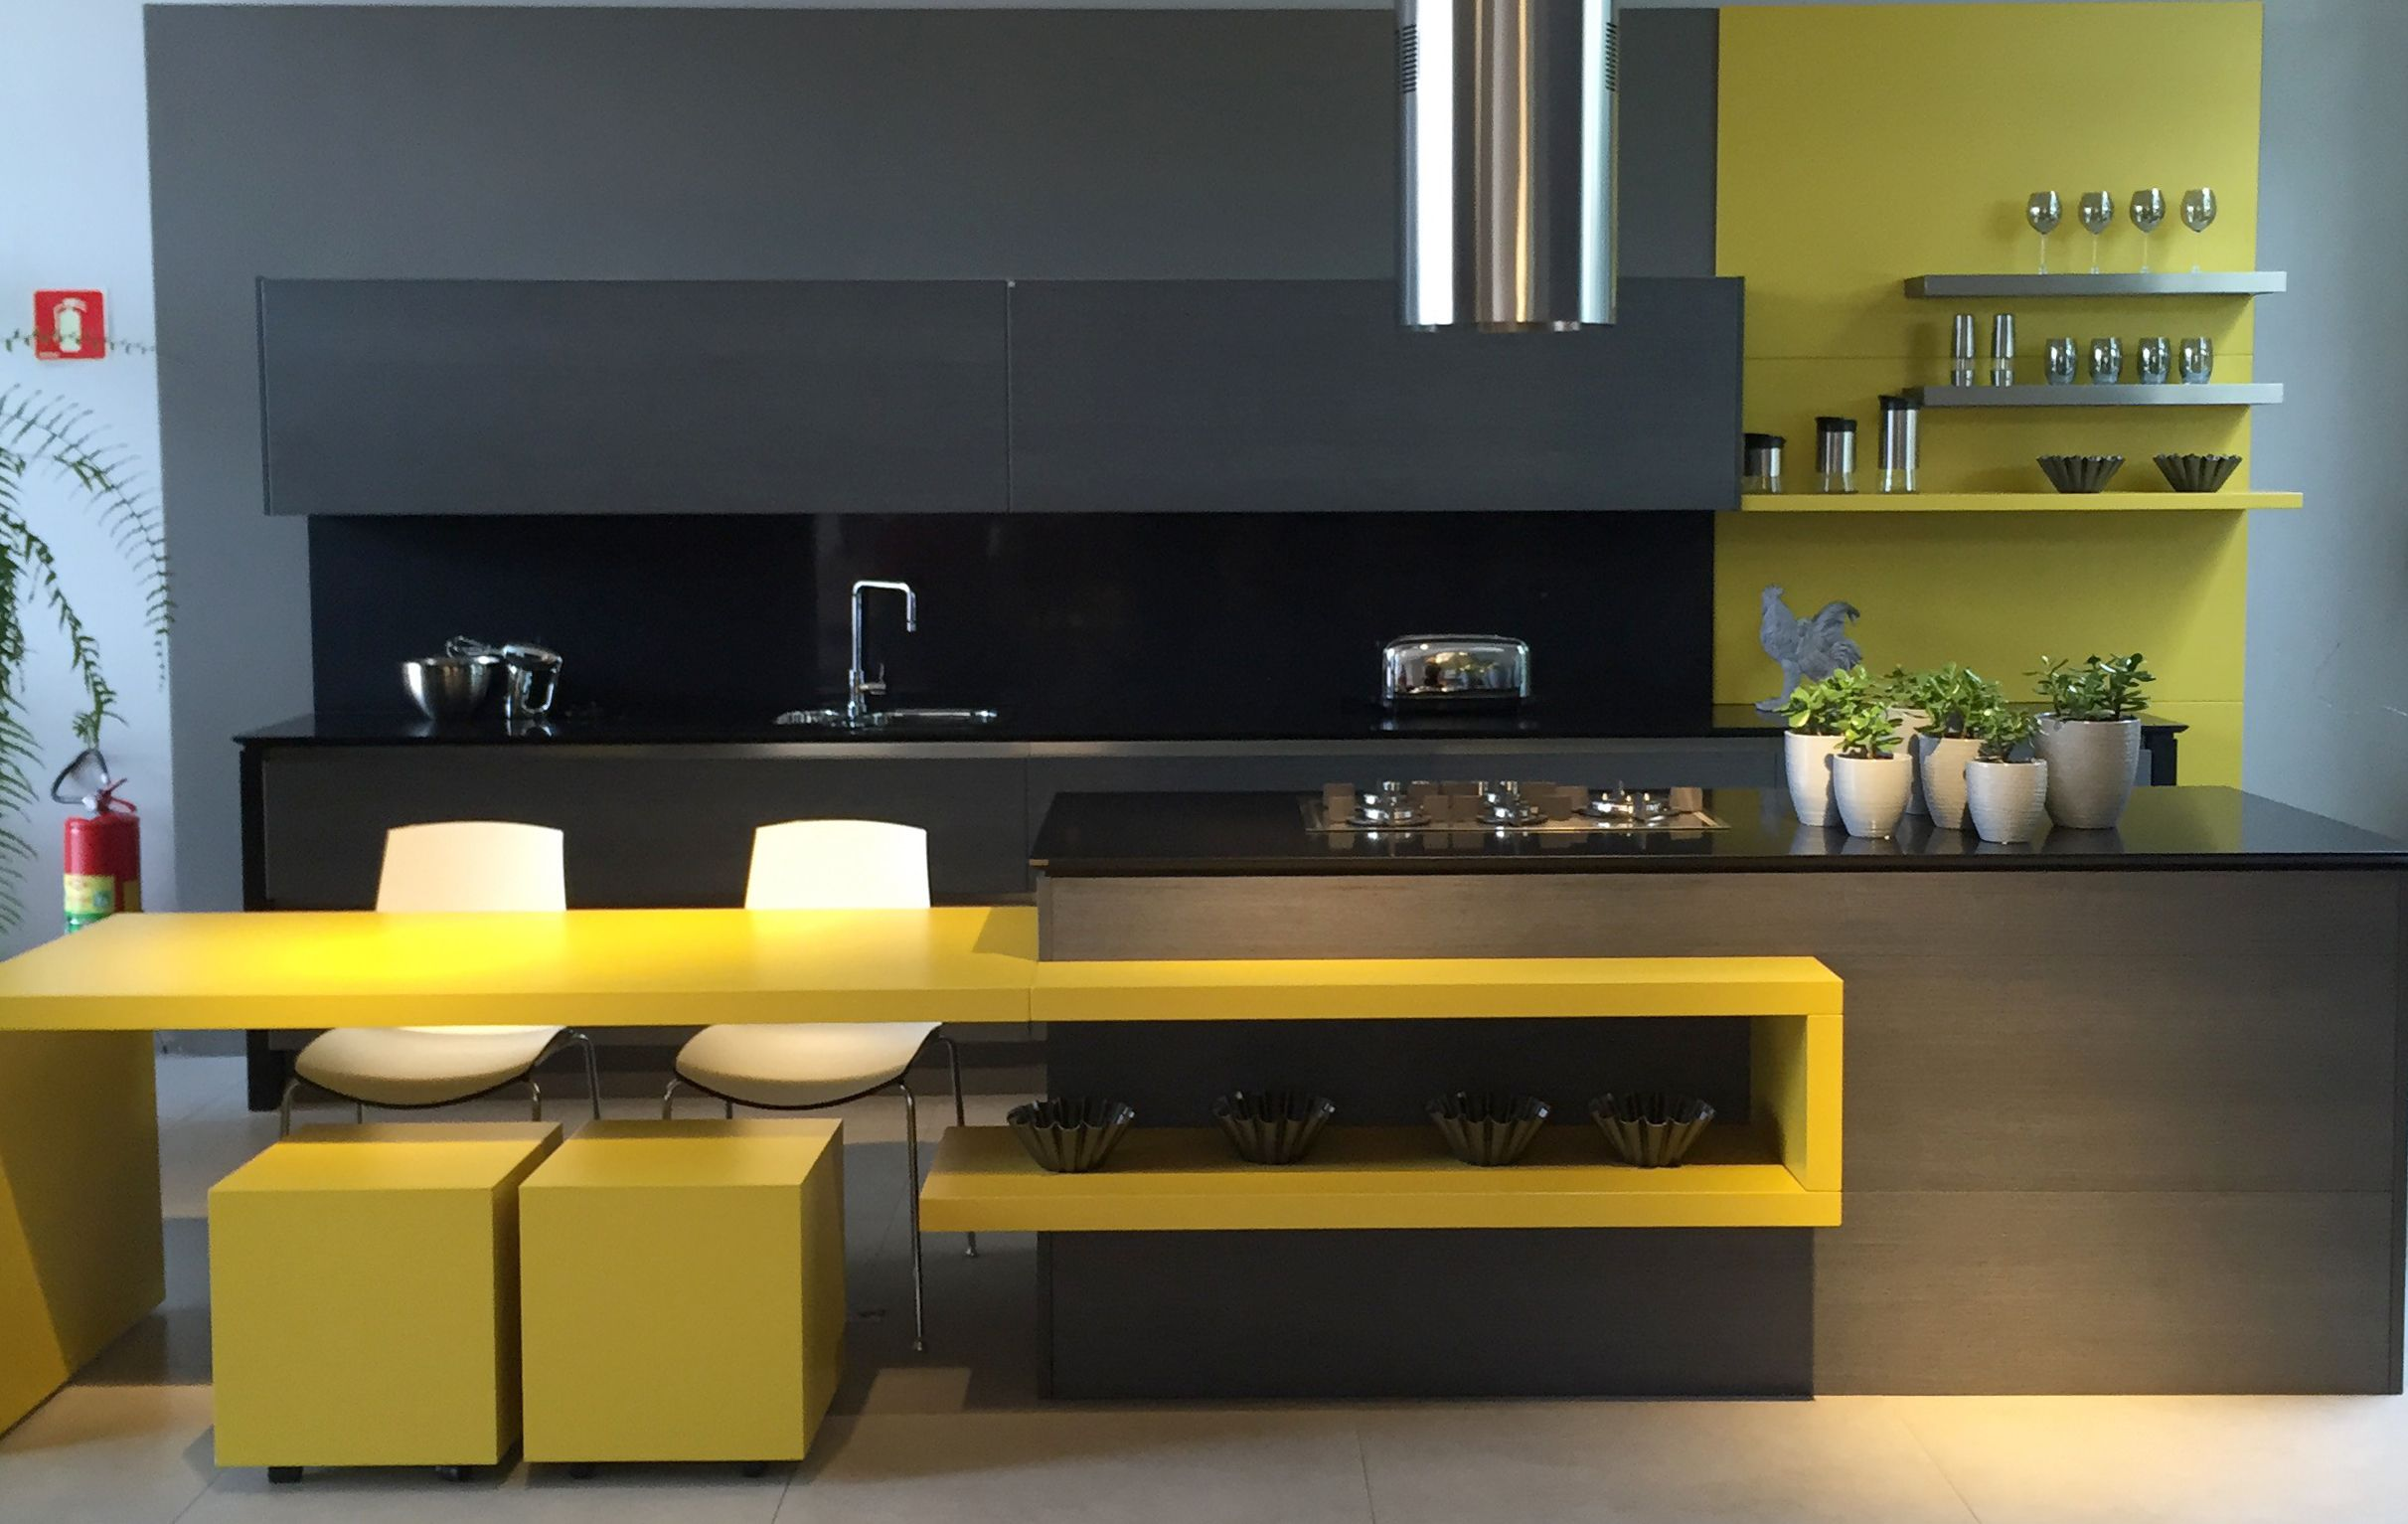 Walk through my visit to a luxury and high end show room, black and yellow kitchen